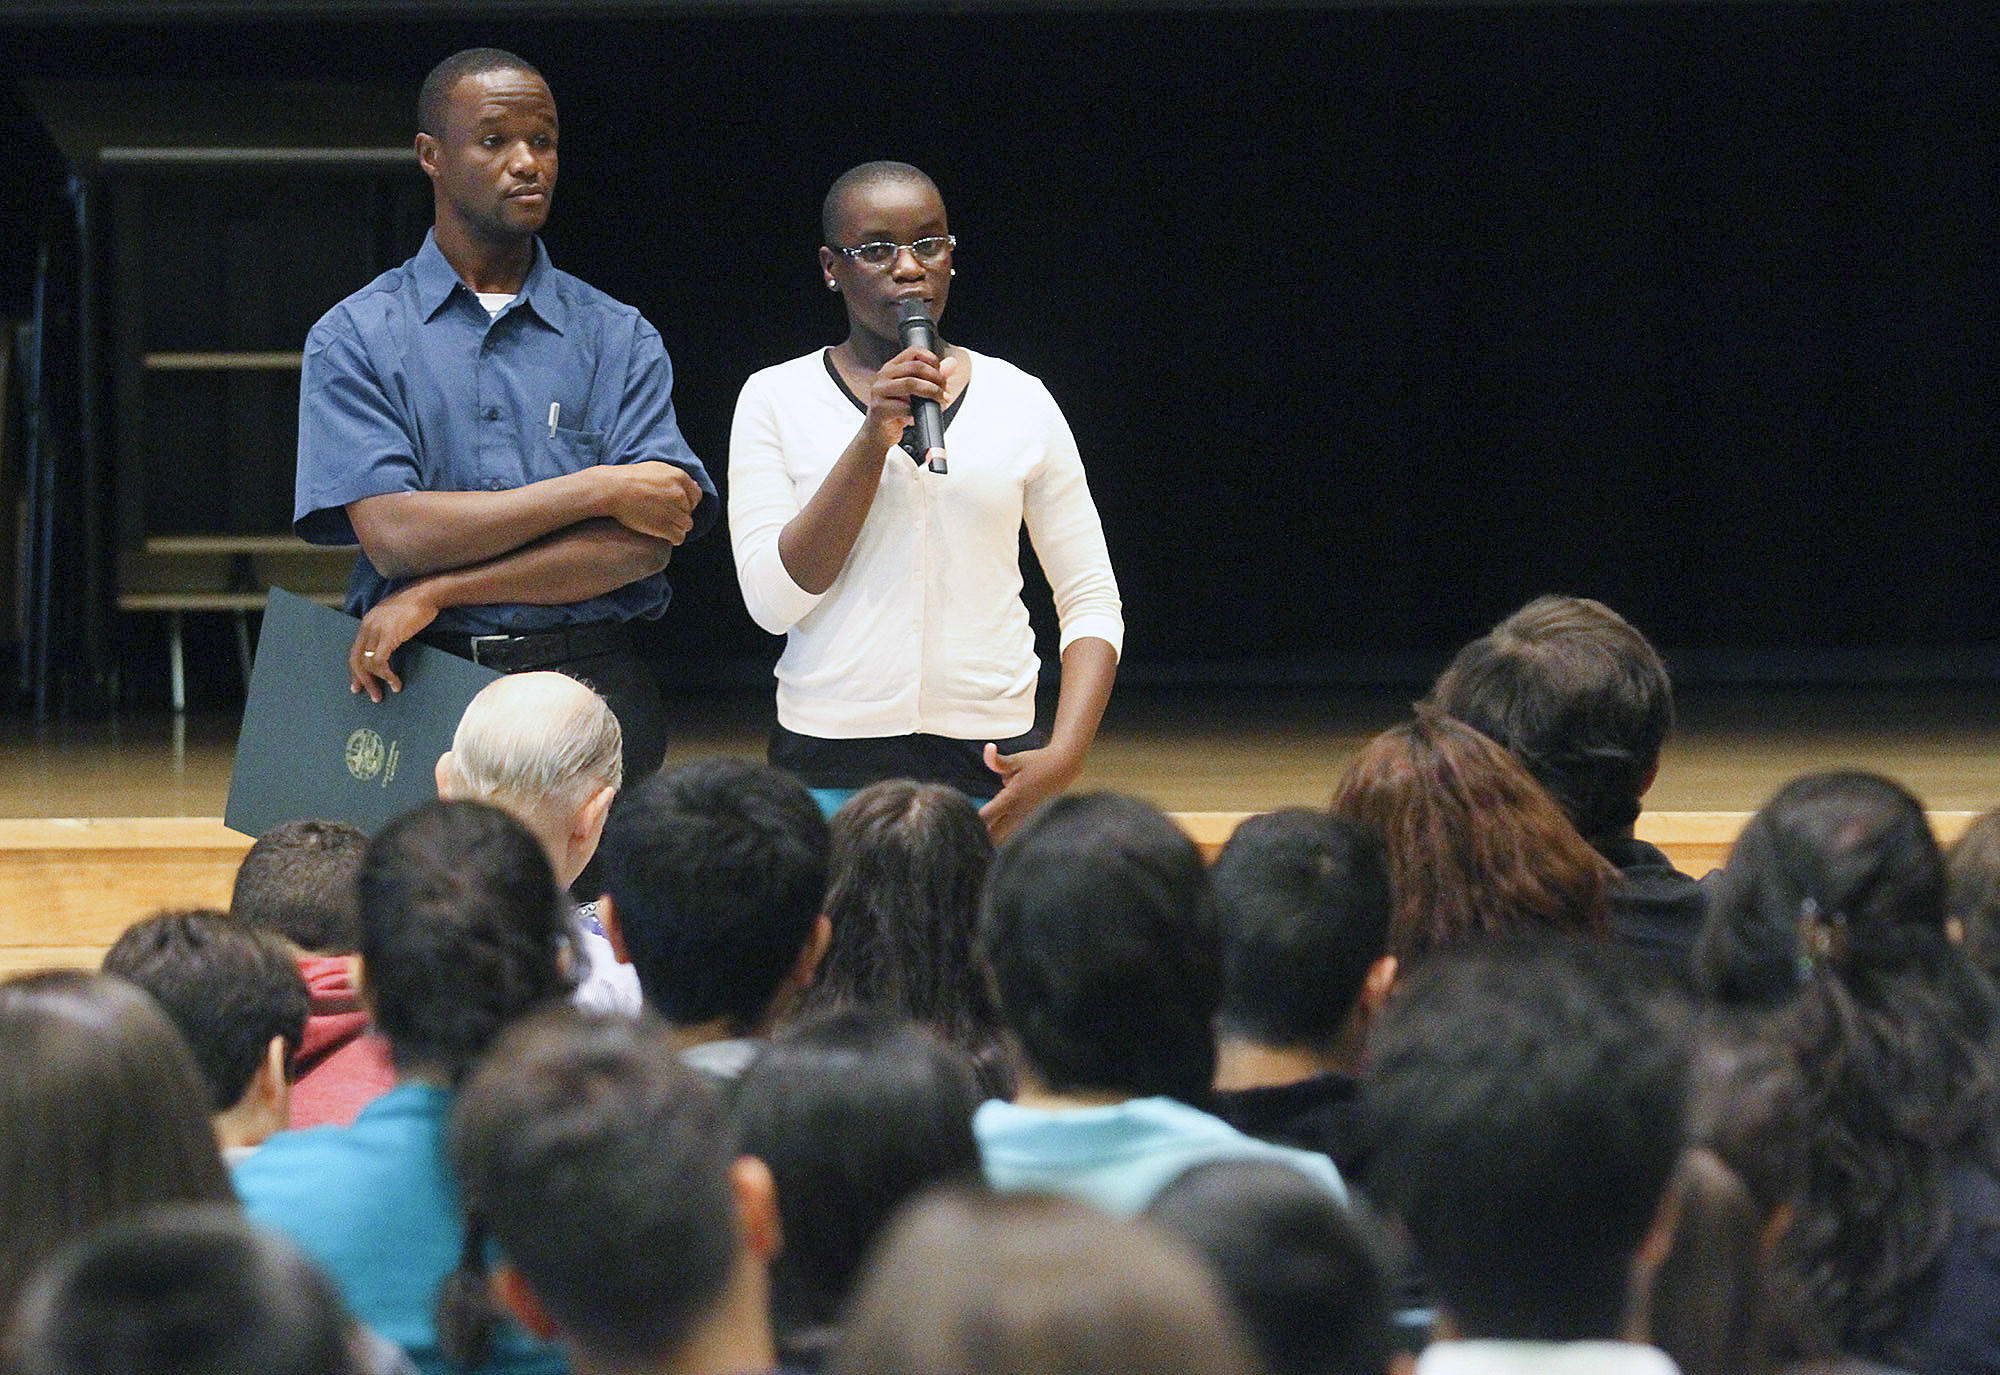 Chess champion Phiona Mutesi, of Uganda, talks with students, answering questions, with her coach Robert Katende at Clark Magnet High School in Glendale on Monday, April 25, 2014. Mutesi grew up in the slums of Uganda and through the game of chess has lifted herself out of the slums onto the international stage for chess and to raise awareness about the plight of her Ugandan people. After her presentation for the students of Clark Magnet, she played against local chess grandmaster Tatev Abrahamyan, of Glendale.